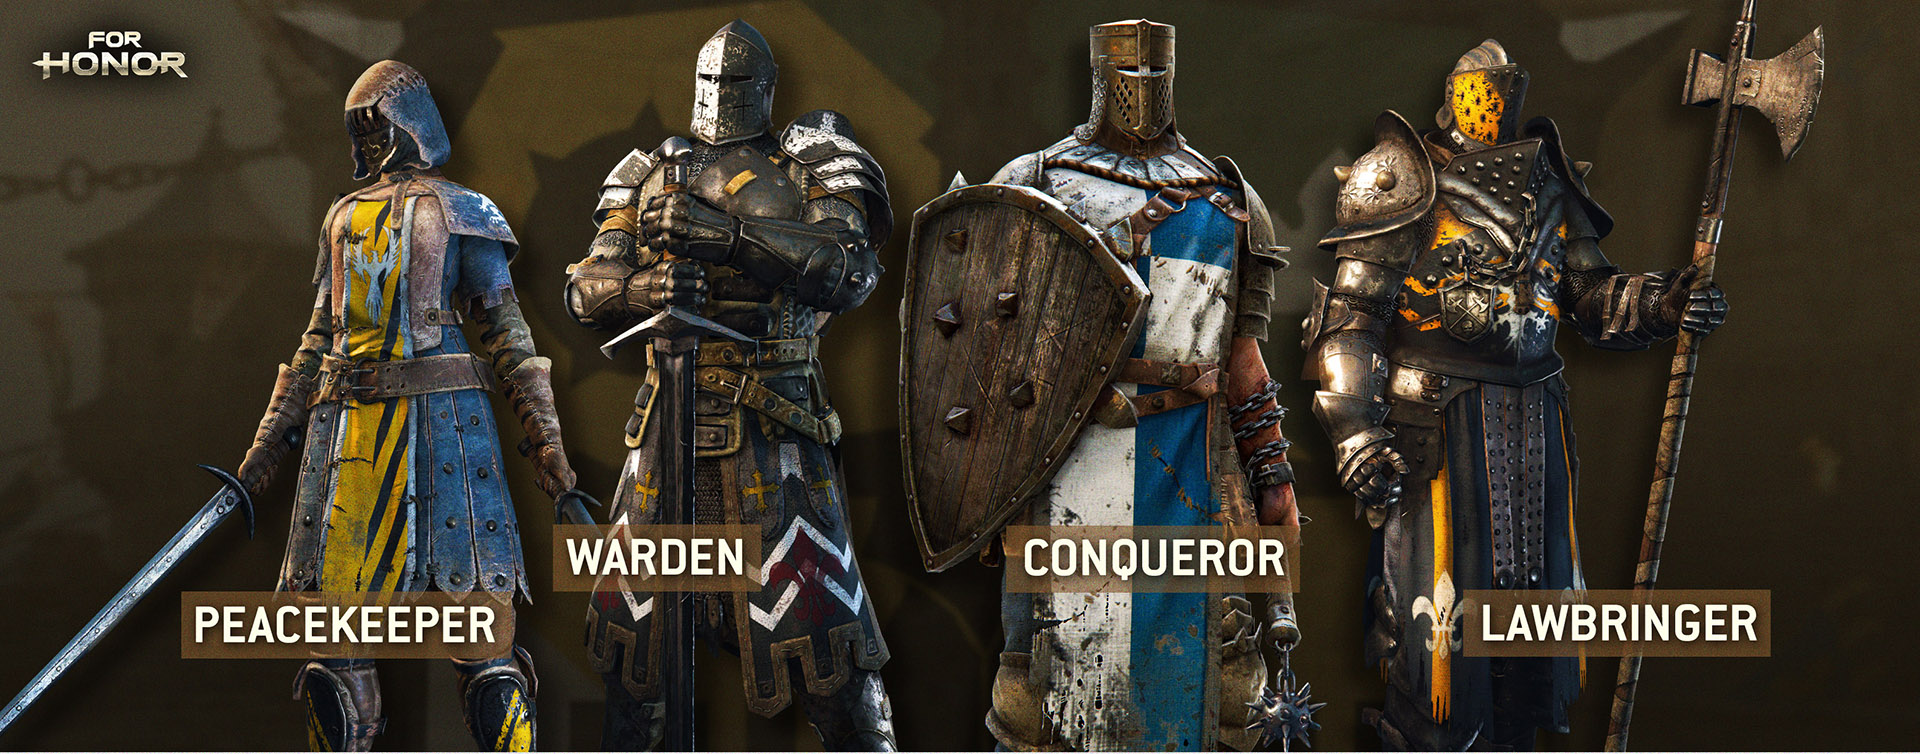 For Honor_knights.jpg